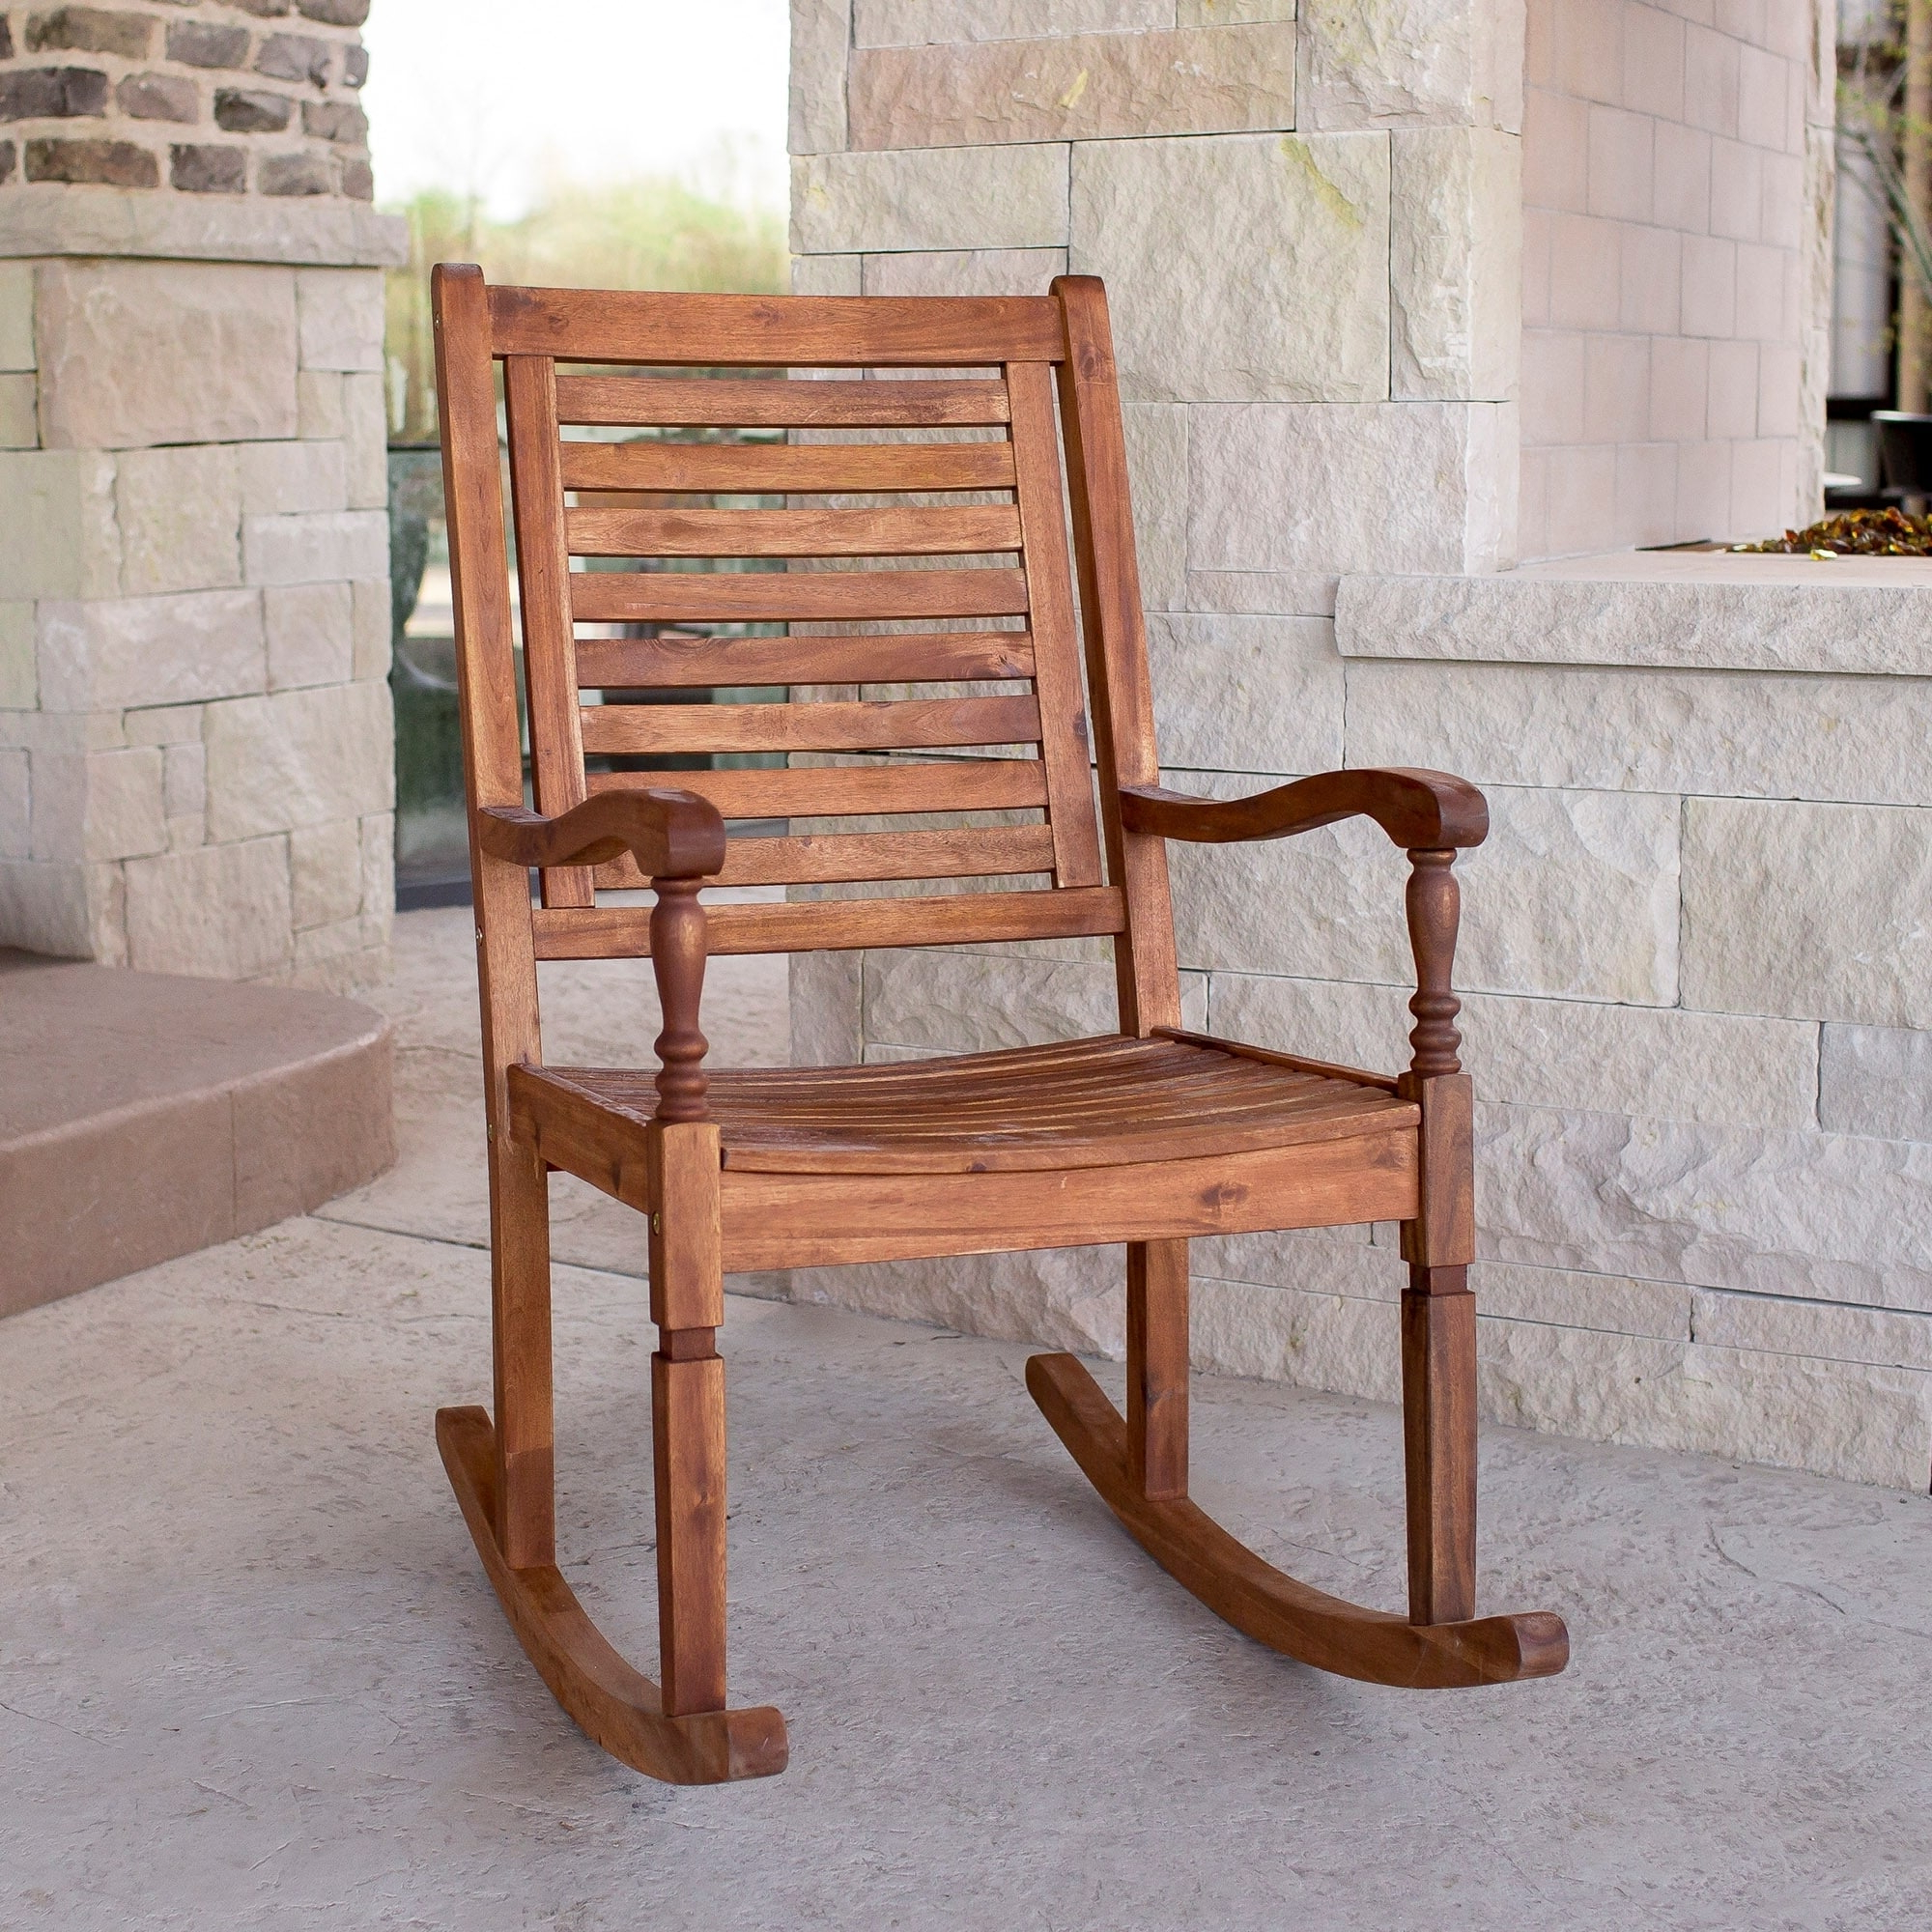 Havenside Home Surfside Acacia Outdoor Rocking Chair – Brown Within Current Havenside Home Surfside Outdoor Lounge Chairs (View 17 of 25)